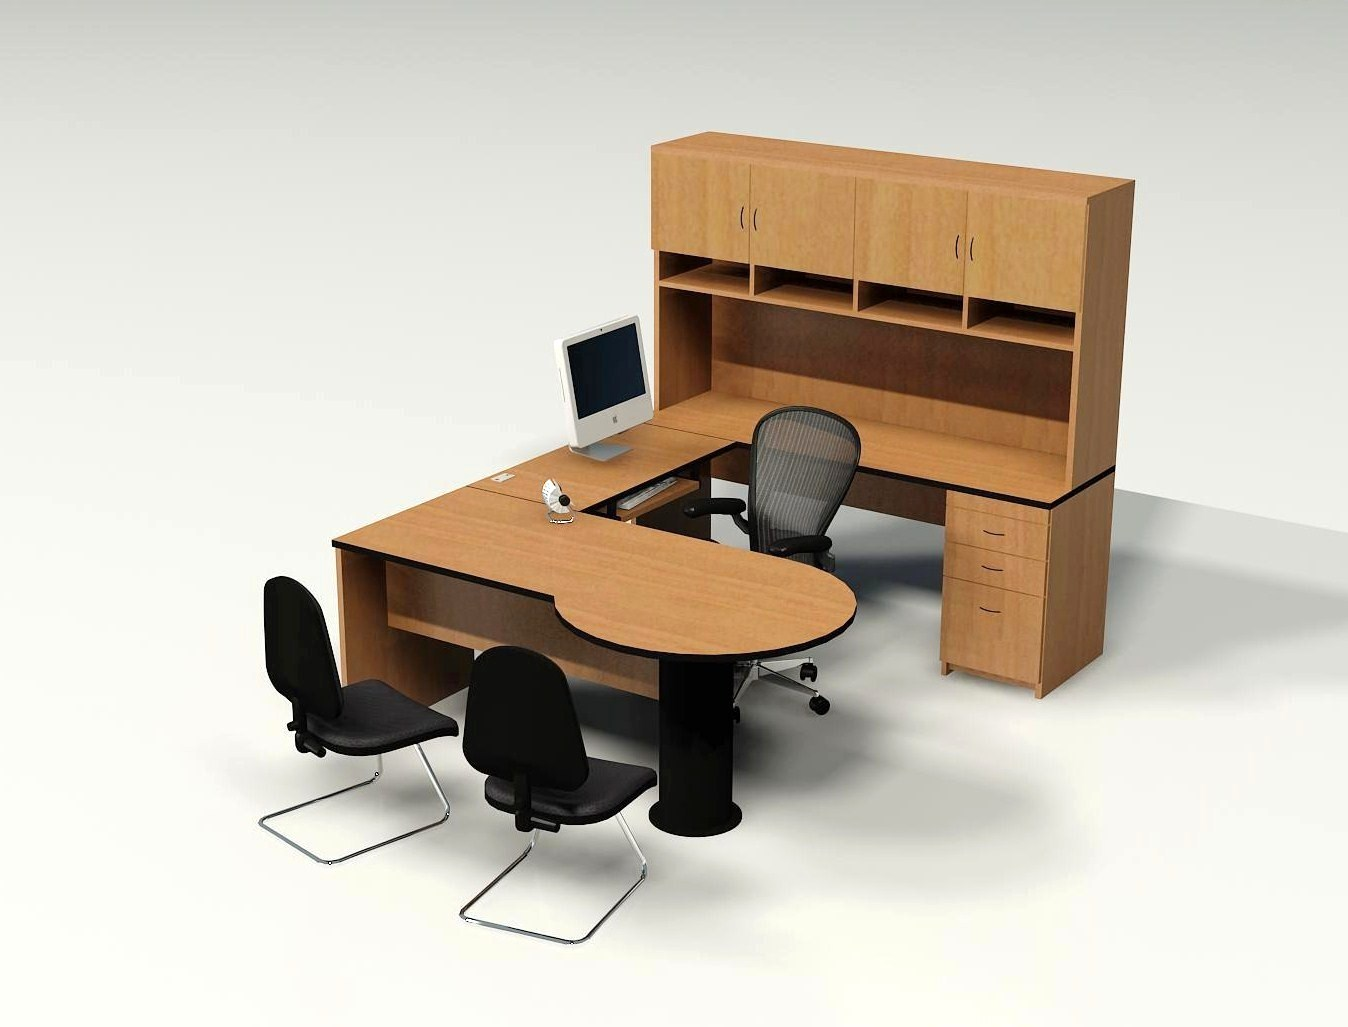 office tables and chairs images beach amazon furniture gujarat spandan blog site